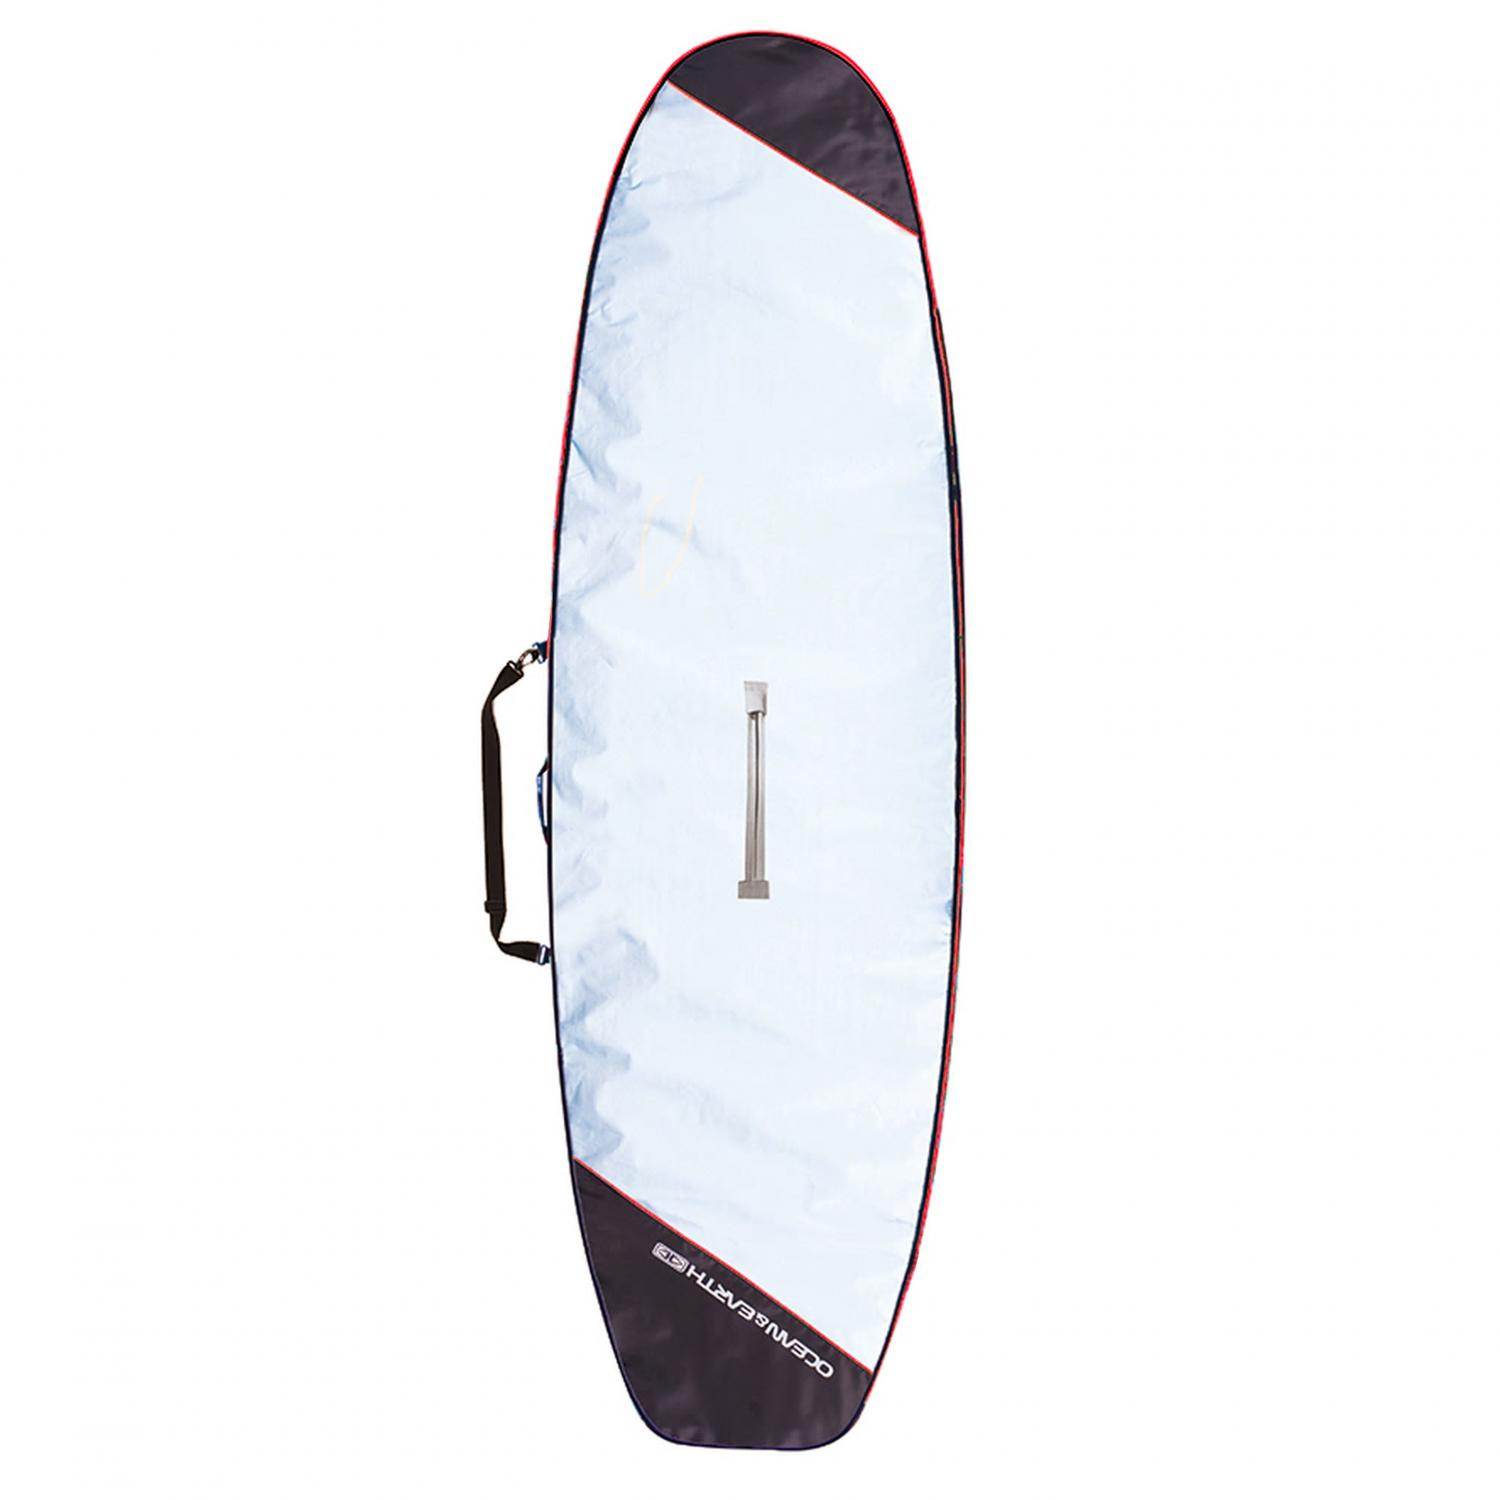 Oxbow SUP Board Bag HD 9.6